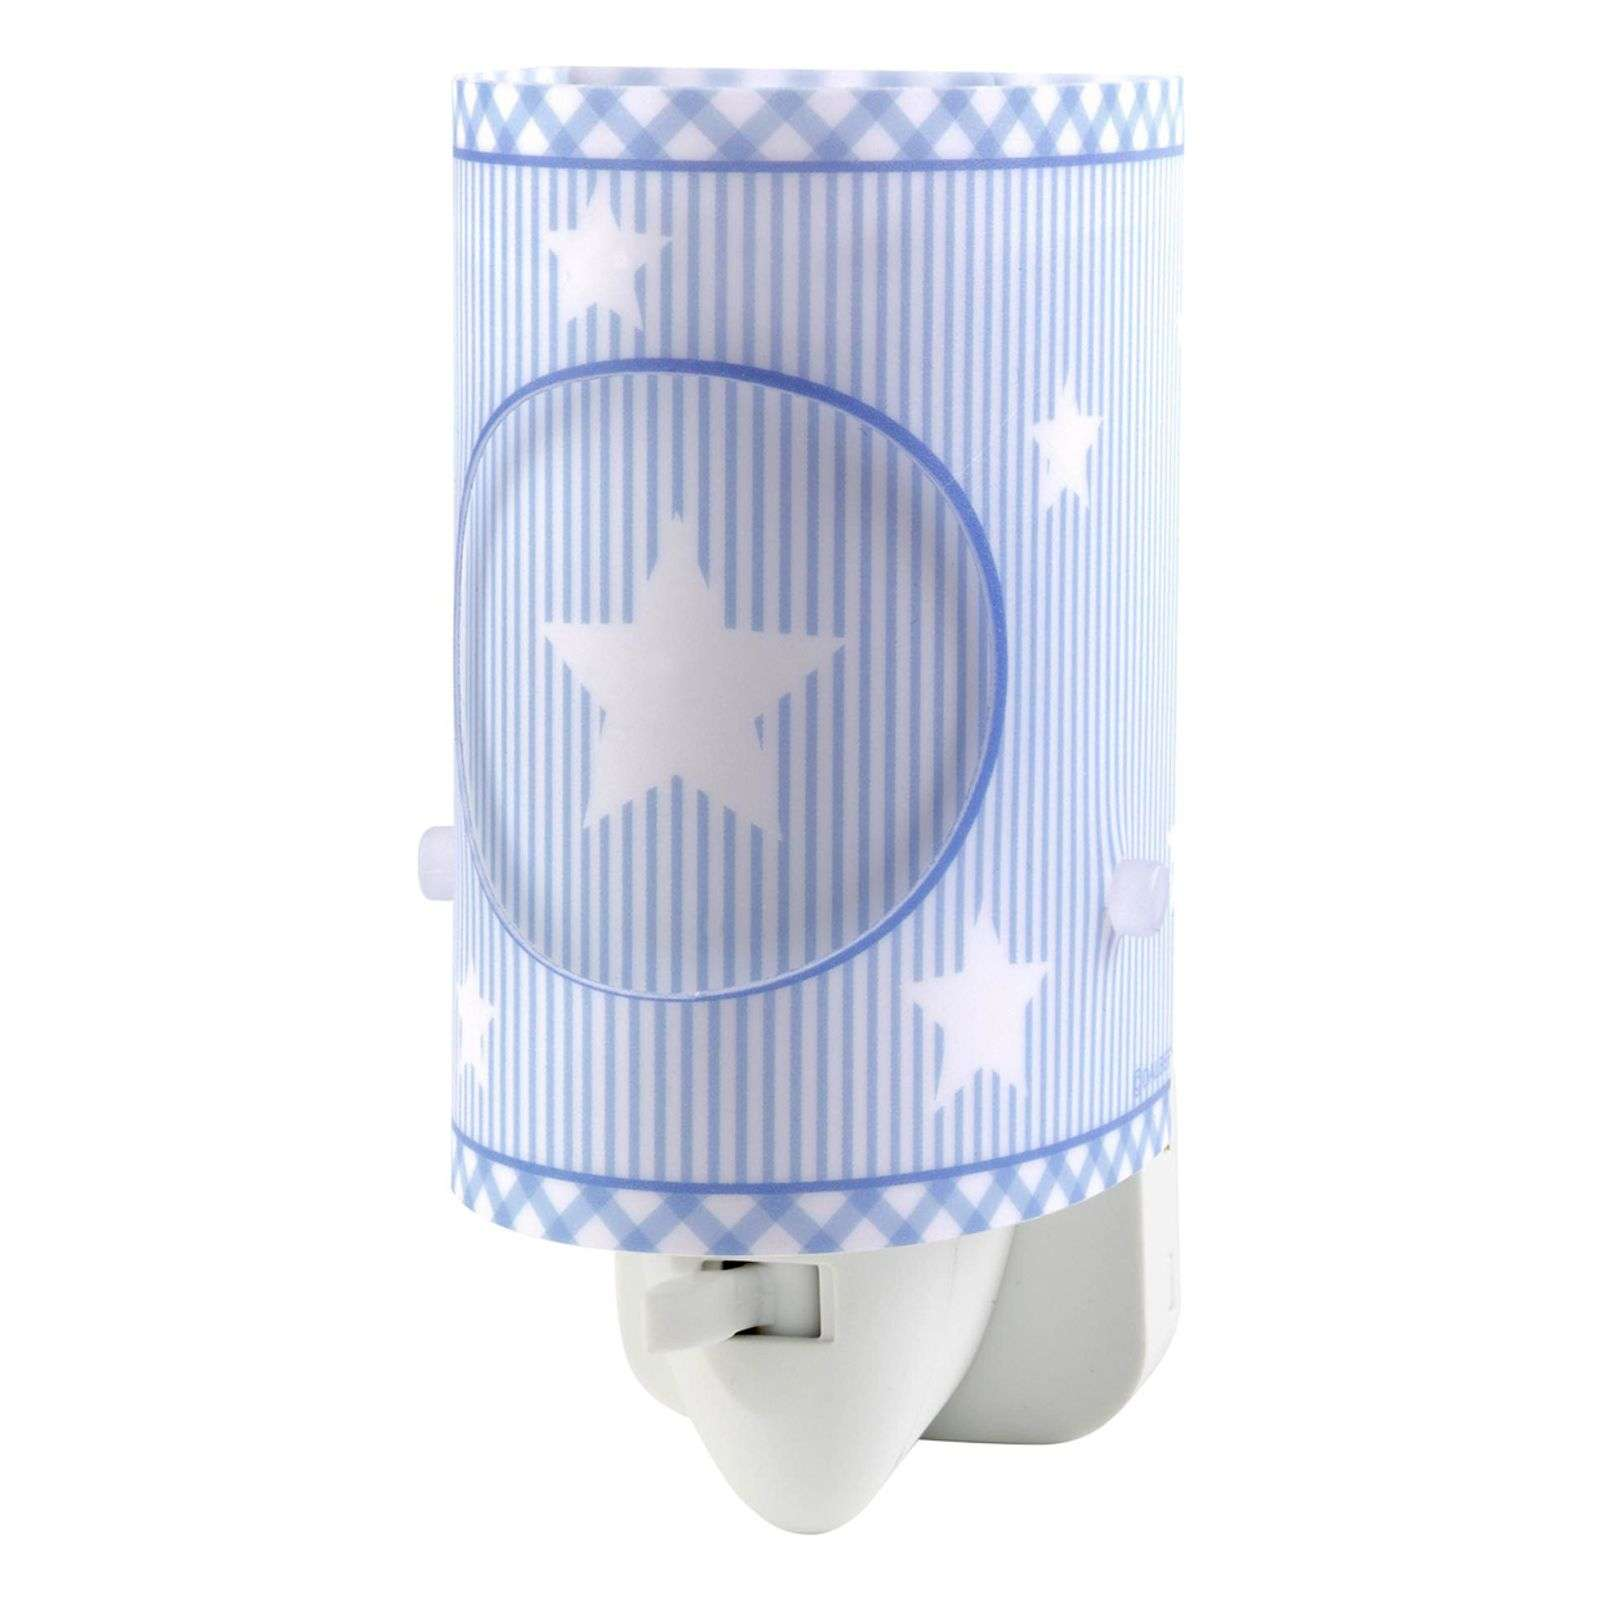 Sweet Dreams - luce notturna LED, blu, con interr.